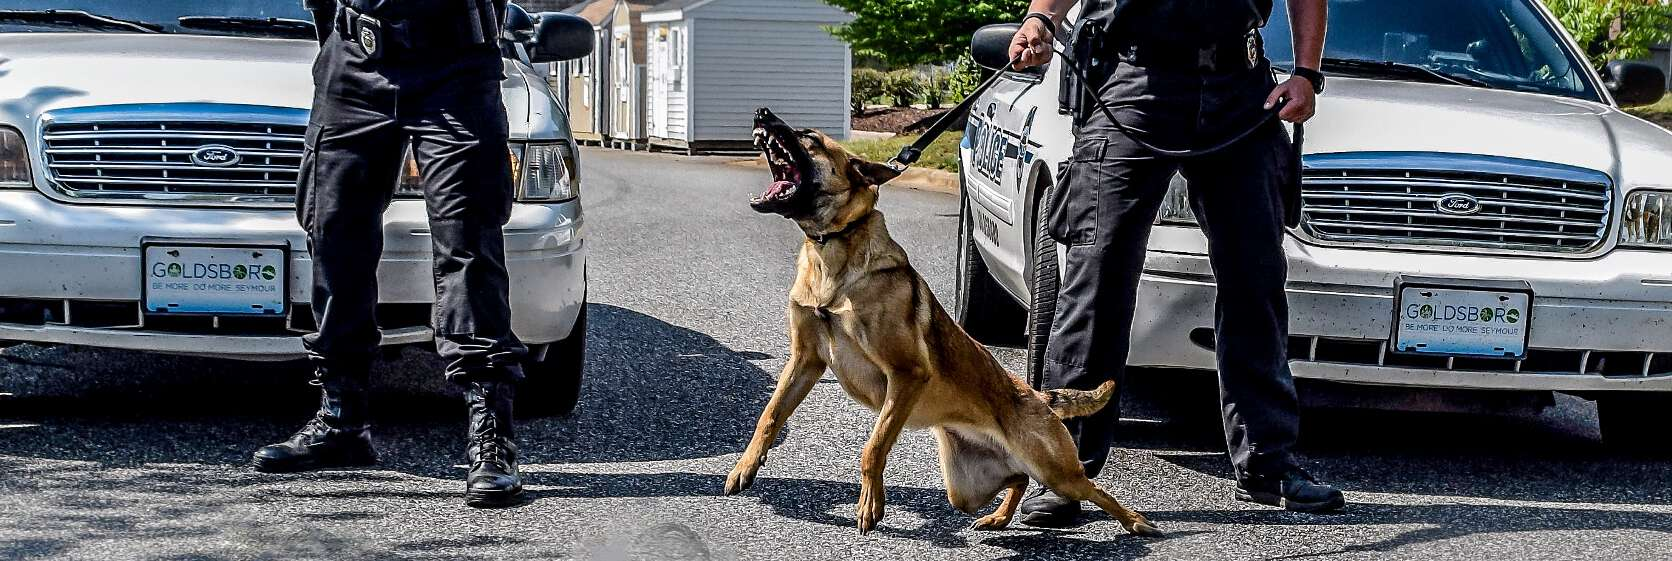 best police k9 trainer course usa